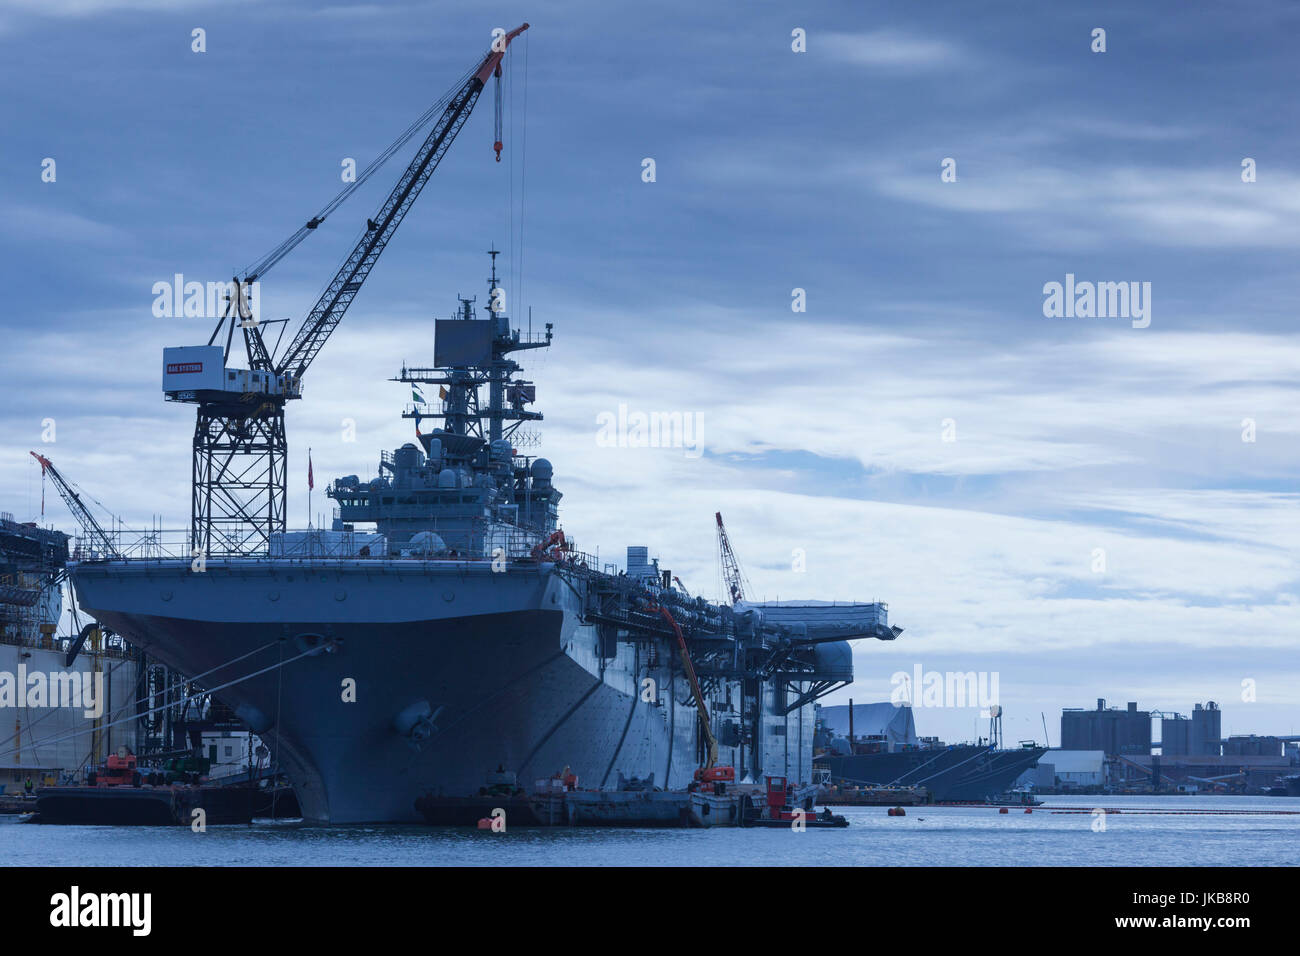 USA, Virginia, Portsmouth, Portsmouth Naval Shipyard, aircraft carriers under construction - Stock Image